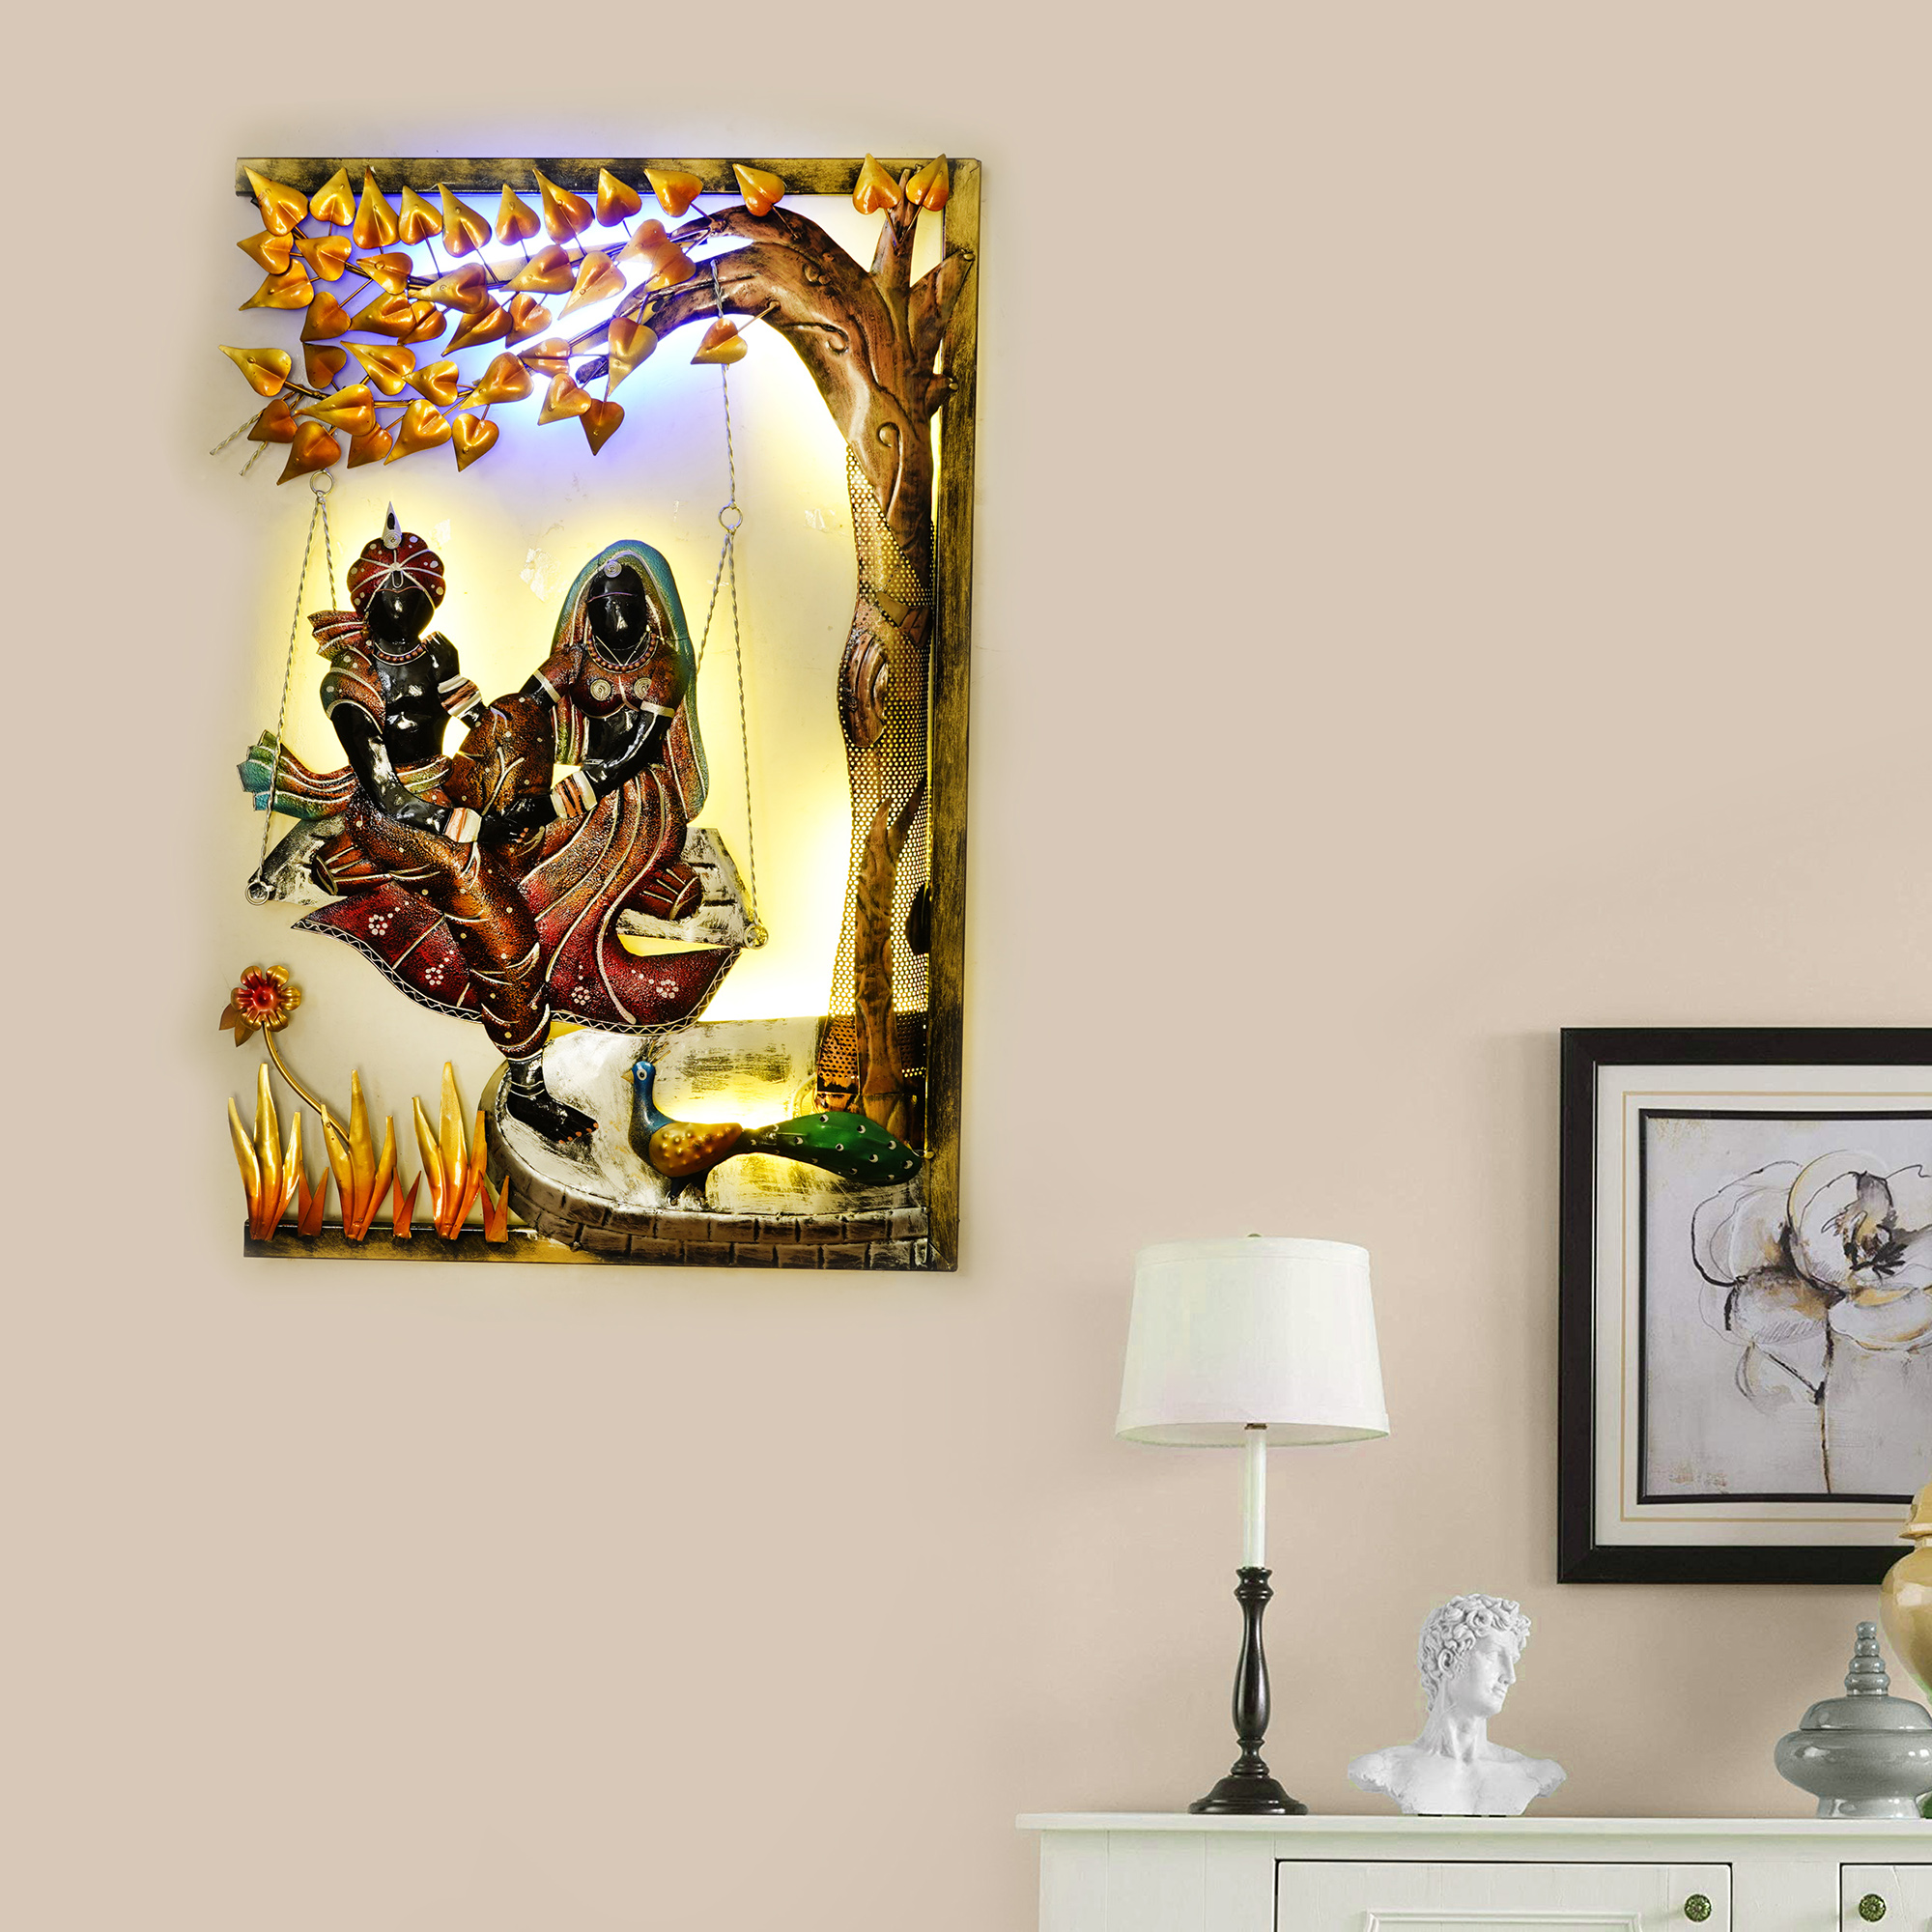 Lord Krishna with Radha on Swing Under Tree Handcrafted Iron Wall Hanging with Background LEDs Indian Home Decor